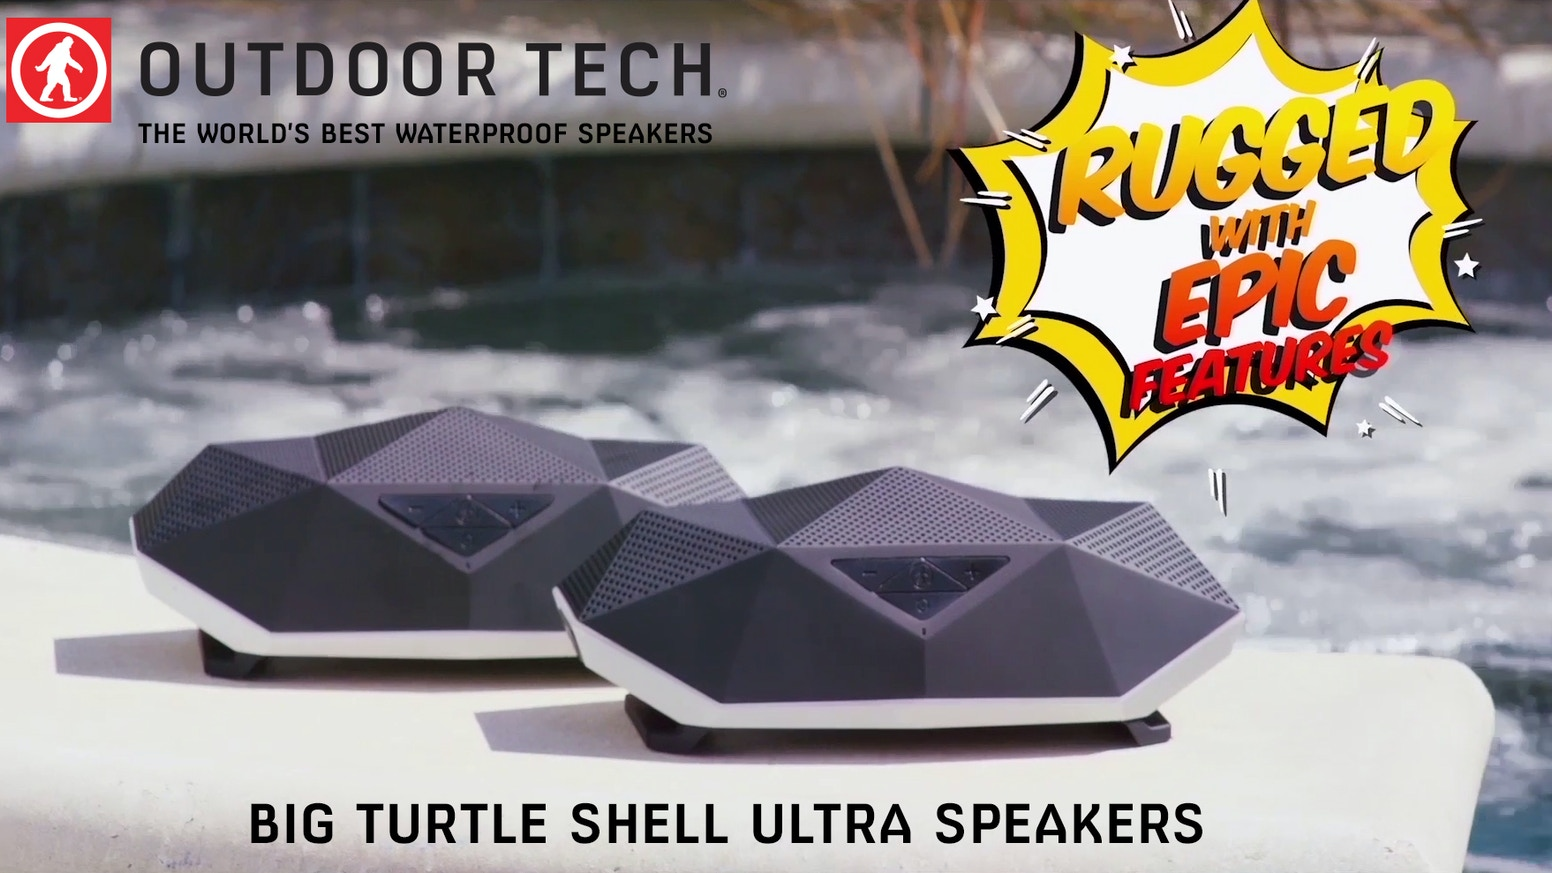 The Big Turtle Shell Ultra - Speaker, Lantern & Powerbank by Outdoor